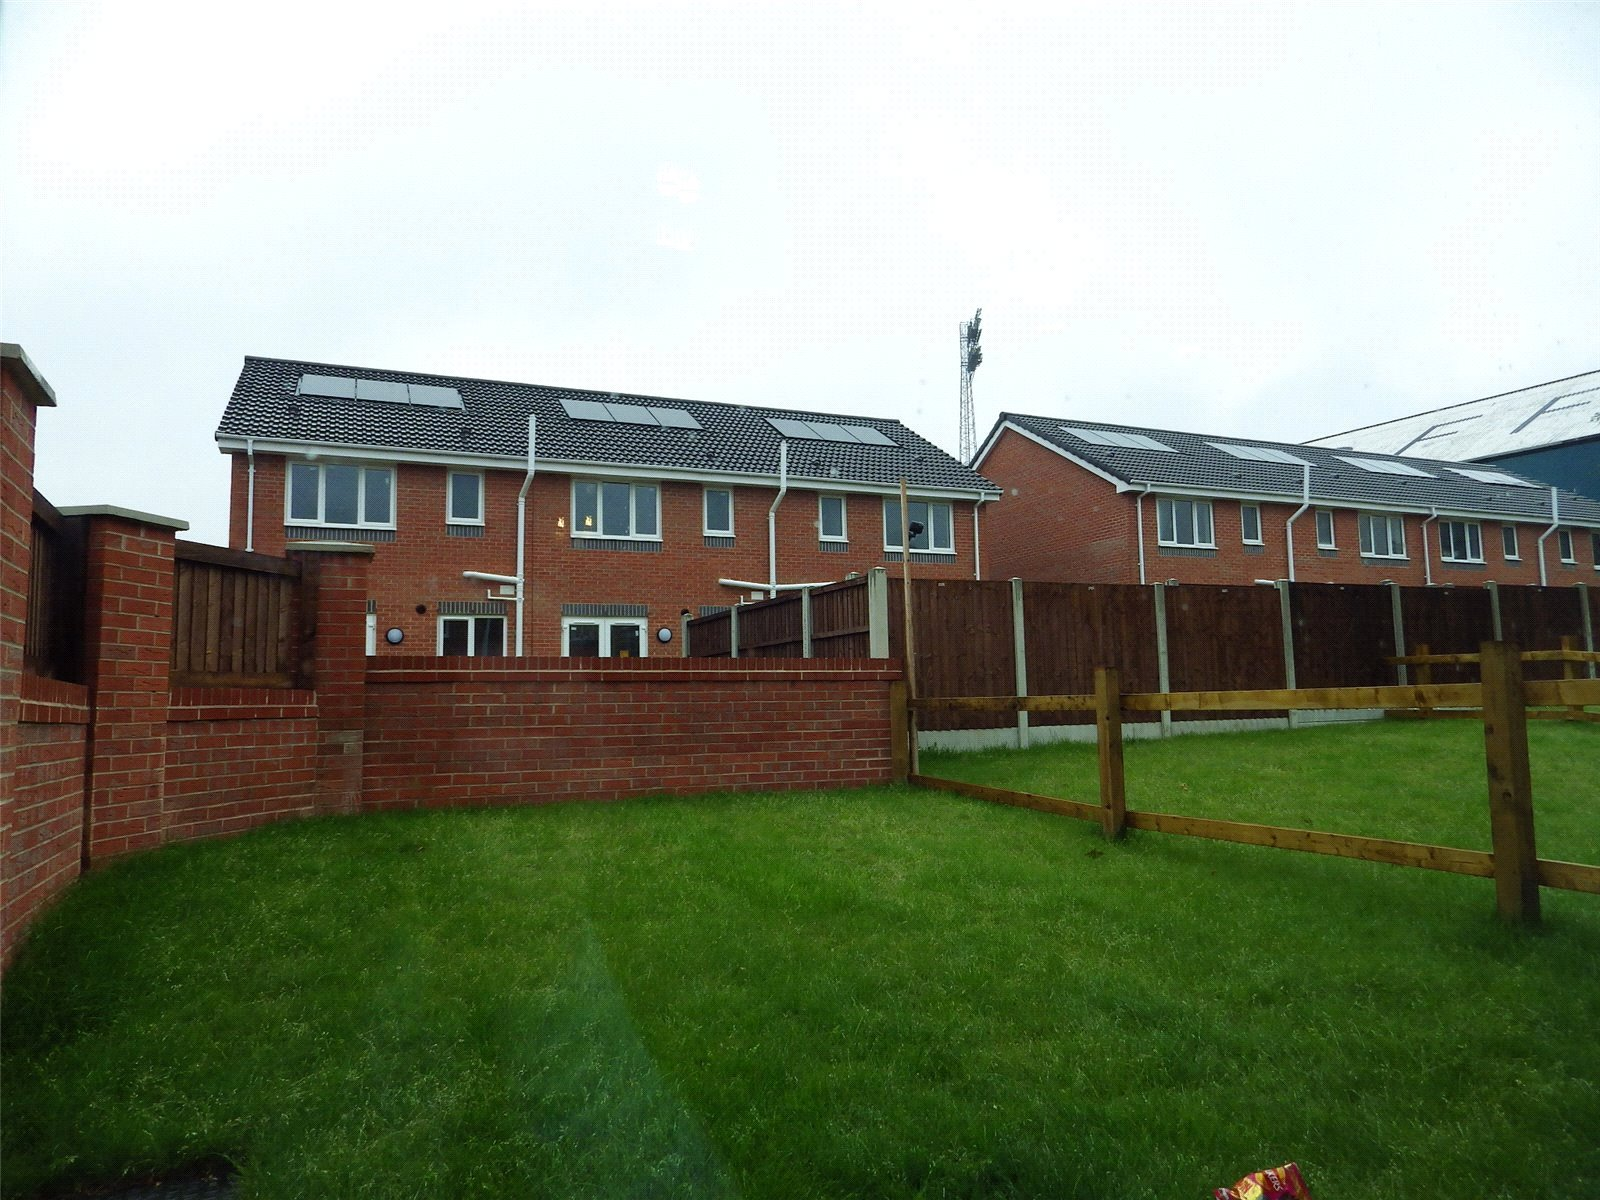 3 Bedrooms End Of Terrace House for sale in Plot 12 Boundary Park, 3 Johnstone Close, Oldham, OL1